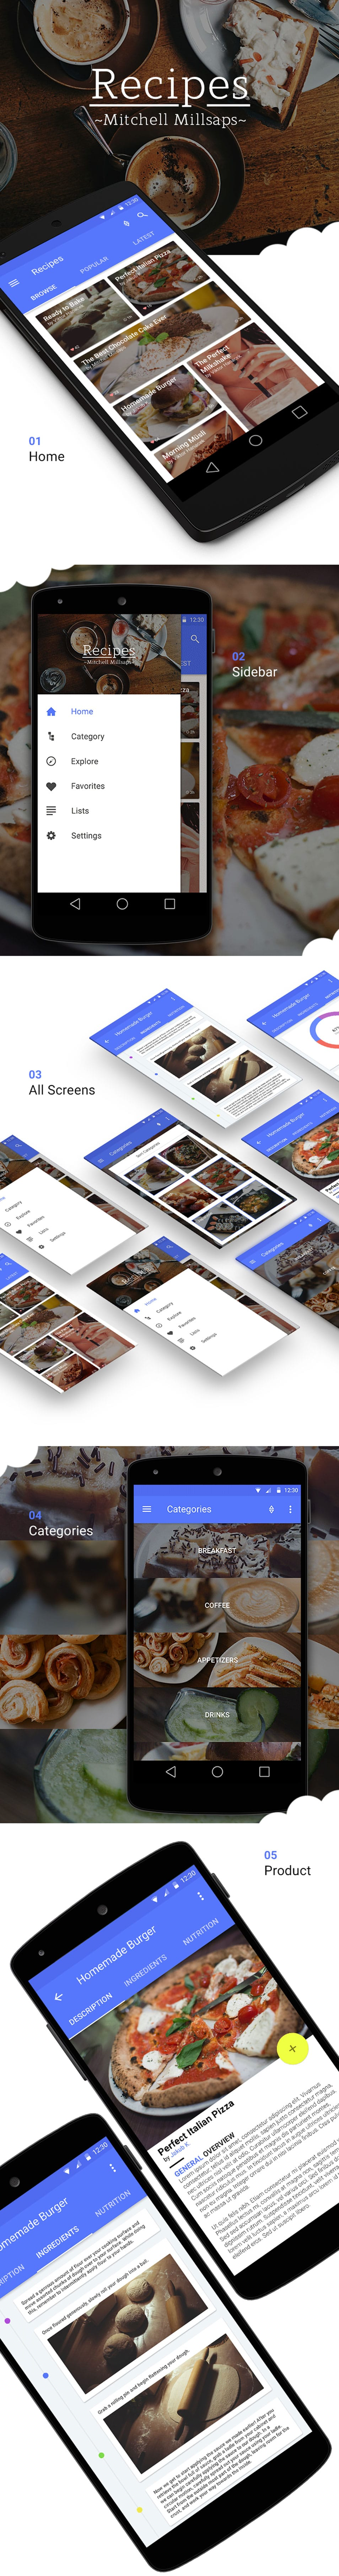 Recipes Material Design Free App Mockup